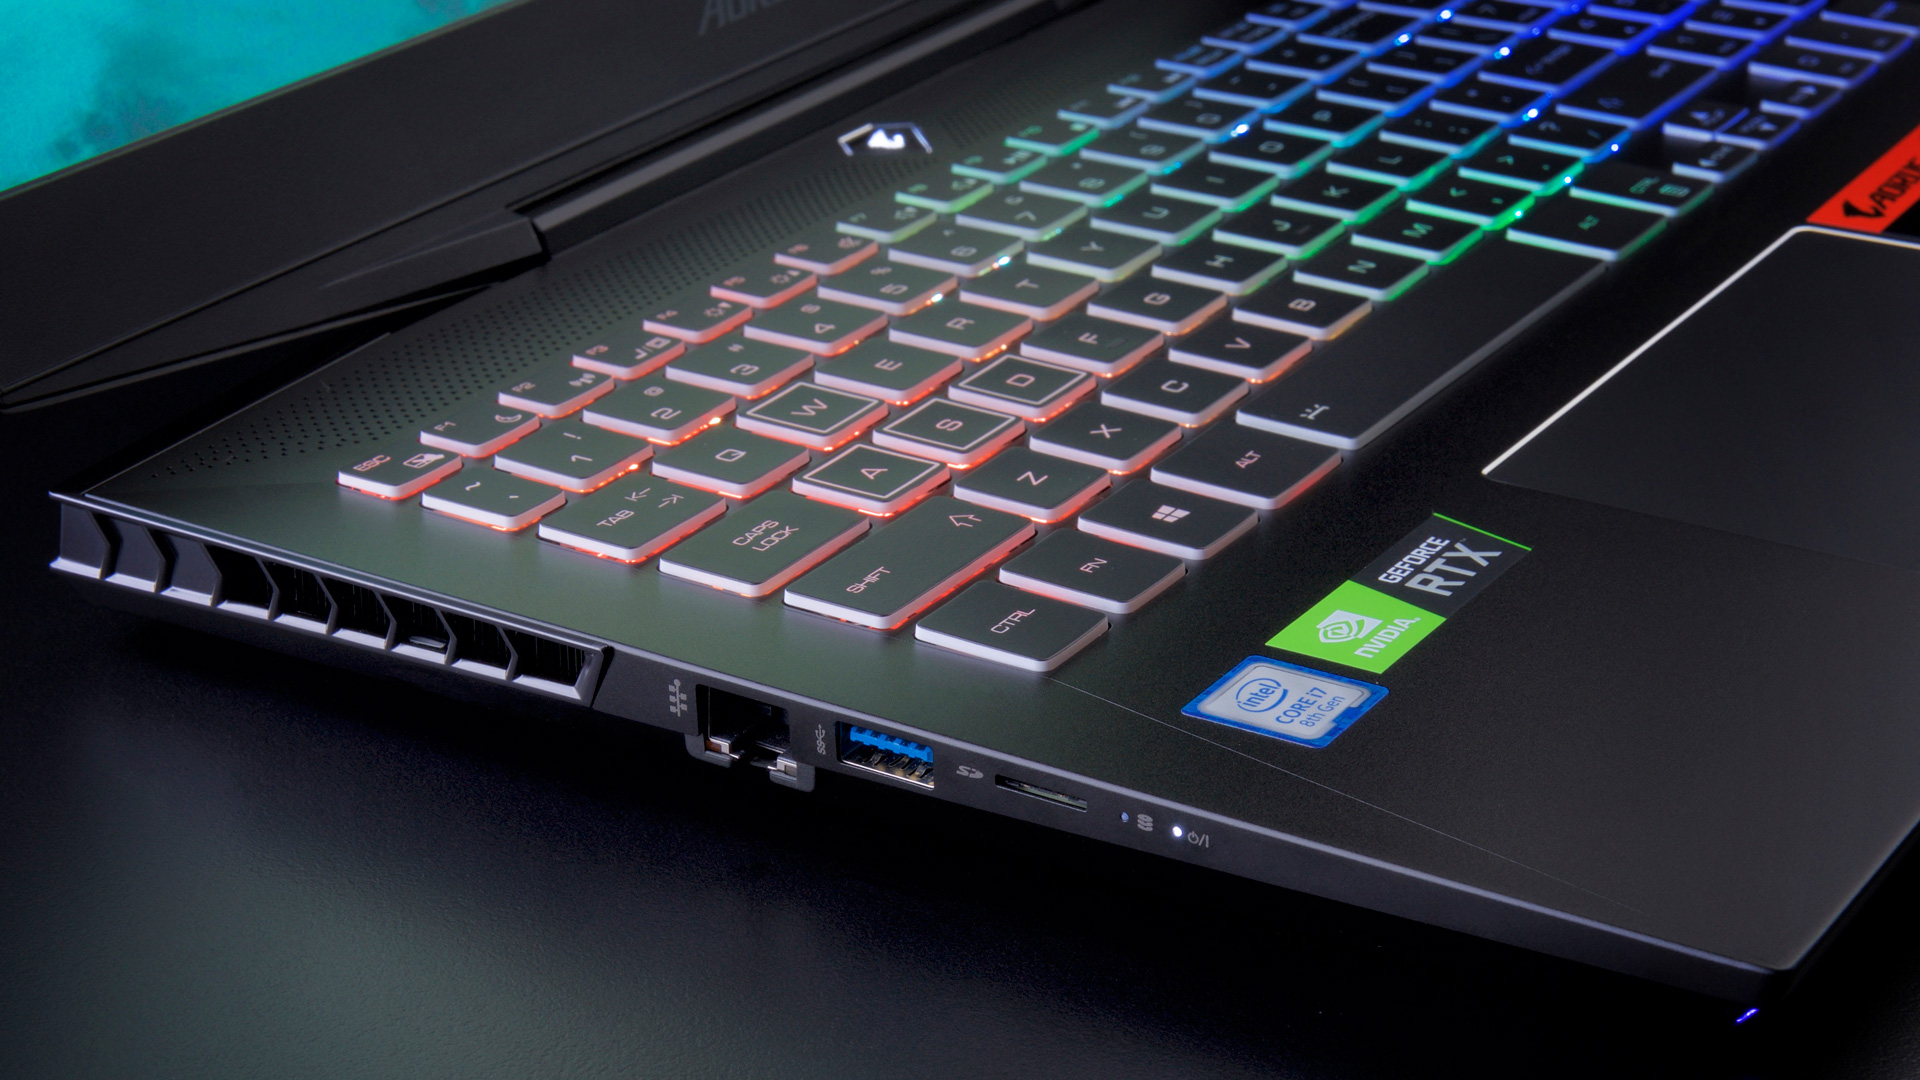 The AORUS 15 is the perfect gaming laptop, no matter what your budget